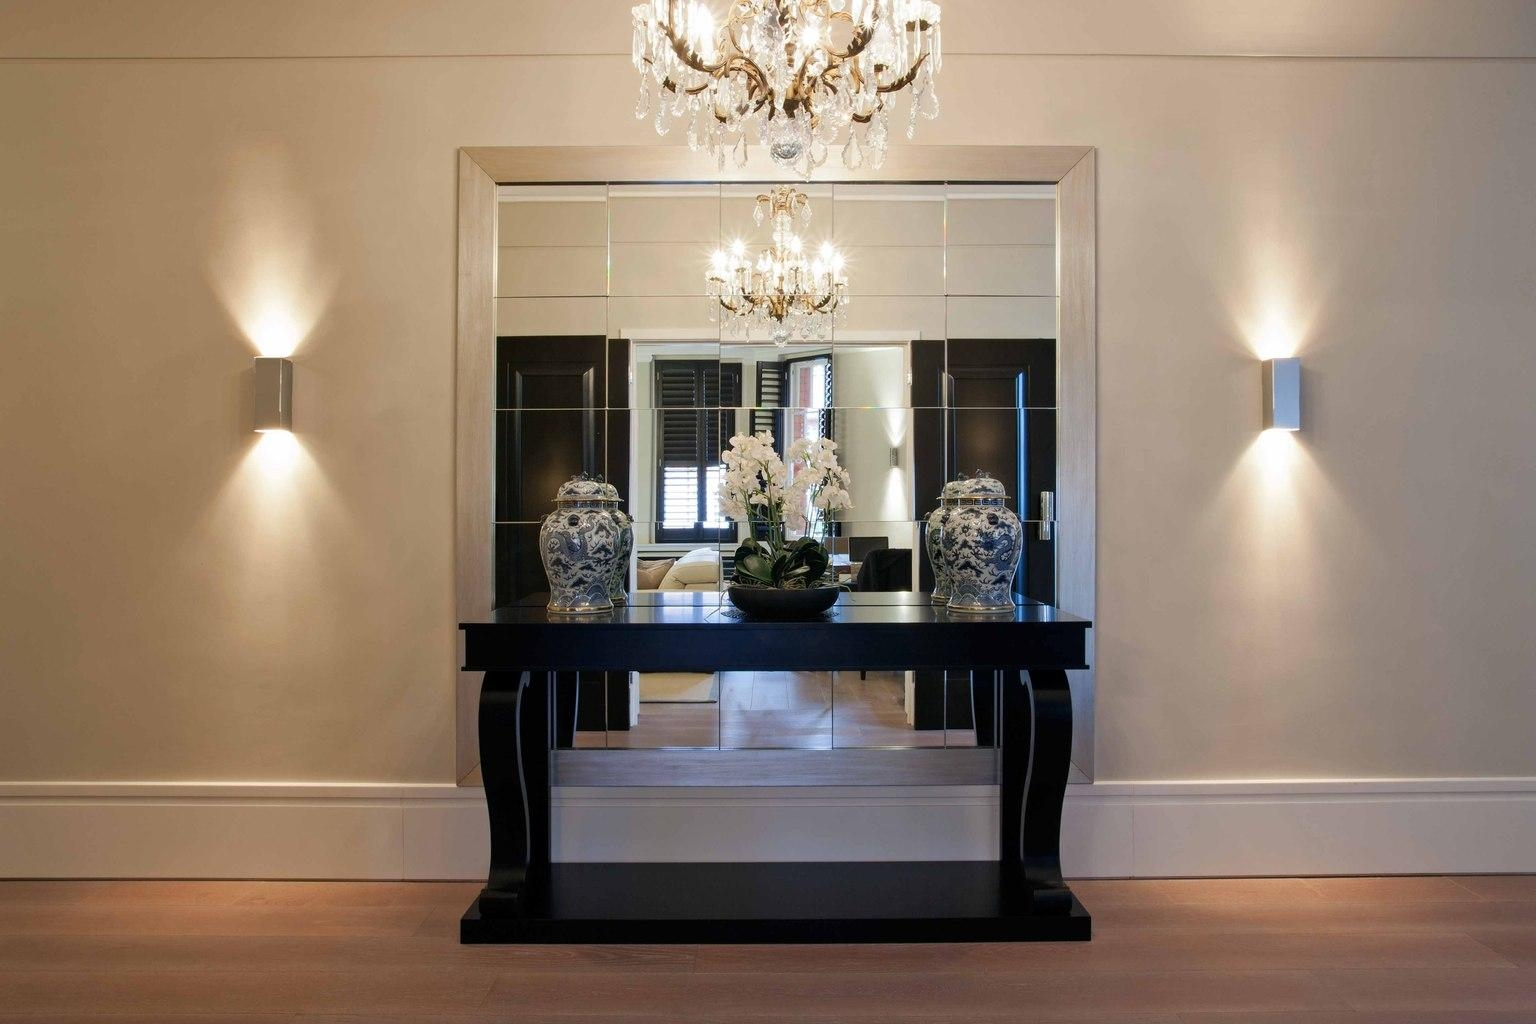 Unique Entry Hall Tables And Mirrors With Gallery Of Finding The Throughout Mirrors For Entry Hall (View 7 of 21)